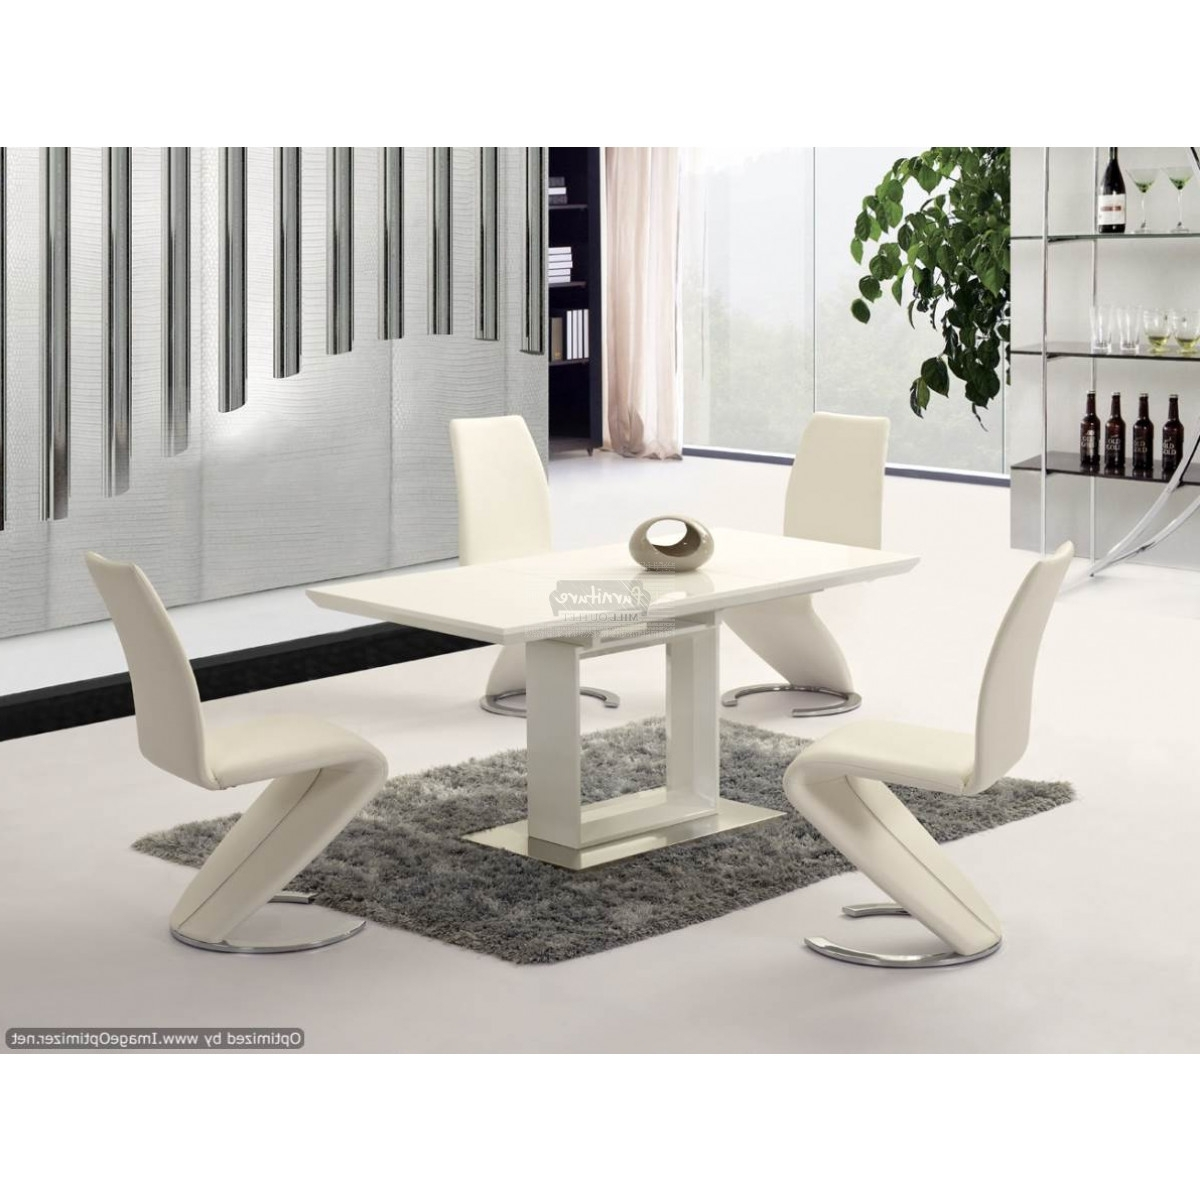 Newest Space White High Gloss Extending Dining Table – 120Cm To 160Cm For White Extending Dining Tables And Chairs (Gallery 5 of 25)